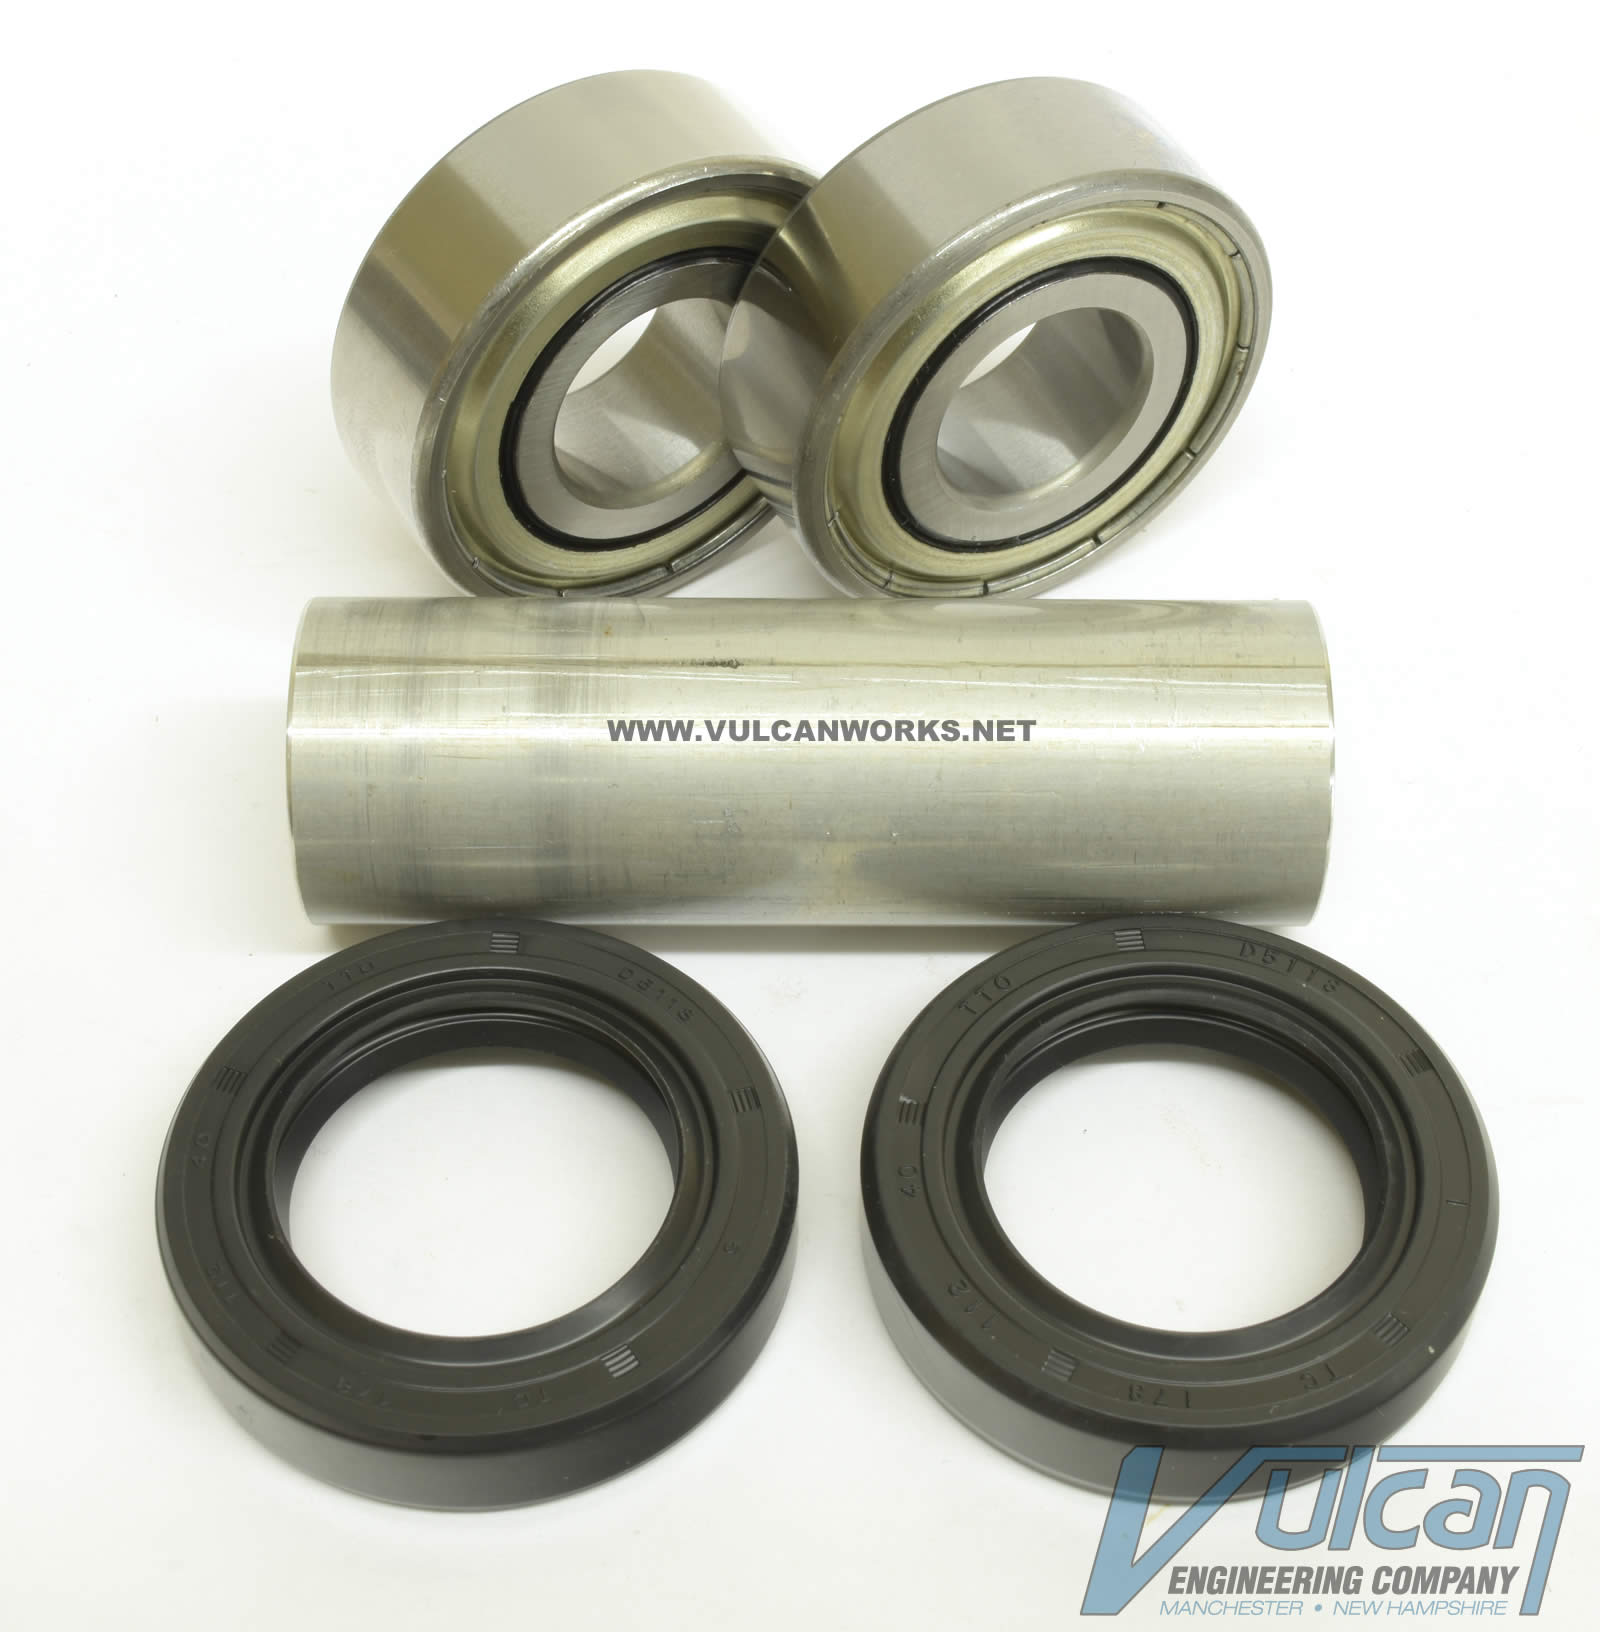 Sealed Bearing Kit for 1984-99 Narrow Front Wheels FXR, FXD, XL (Timken/Tapered)